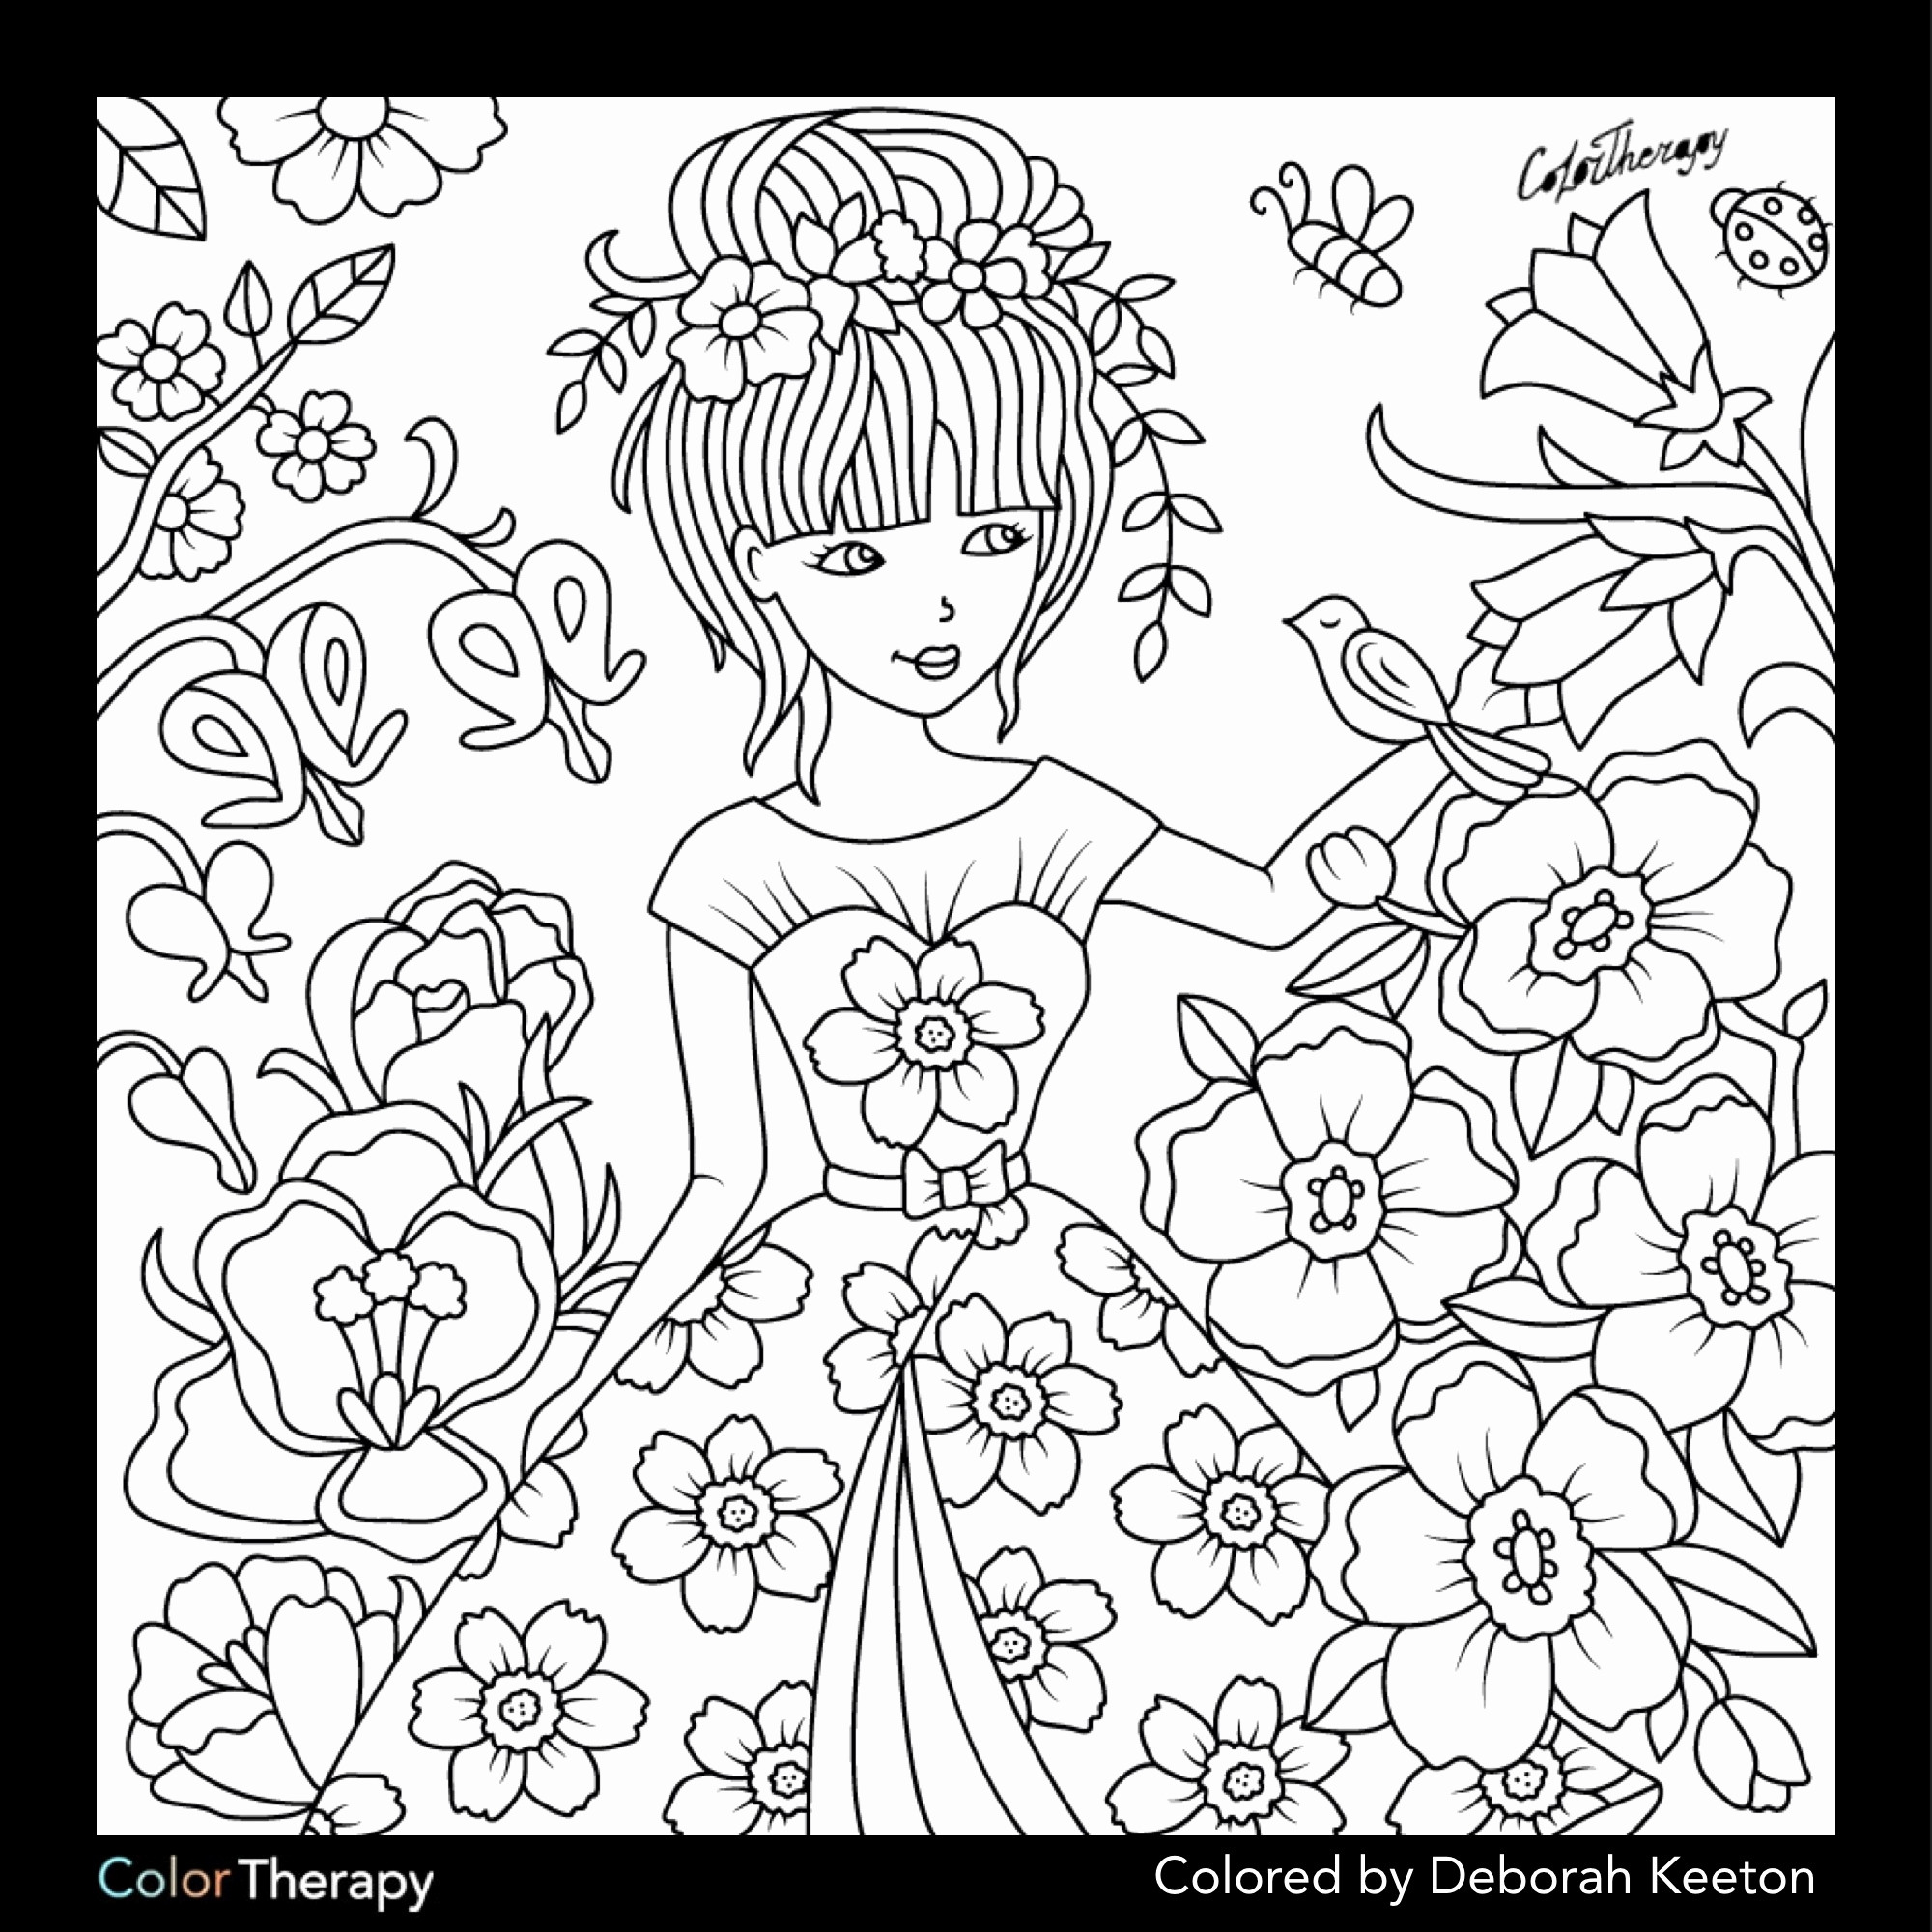 Pretty Flower Vases Of Cool Moana Coloring Pages Beautiful Cool Vases Flower Vase Coloring for Cool Moana Coloring Pages Beautiful Cool Vases Flower Vase Coloring Page